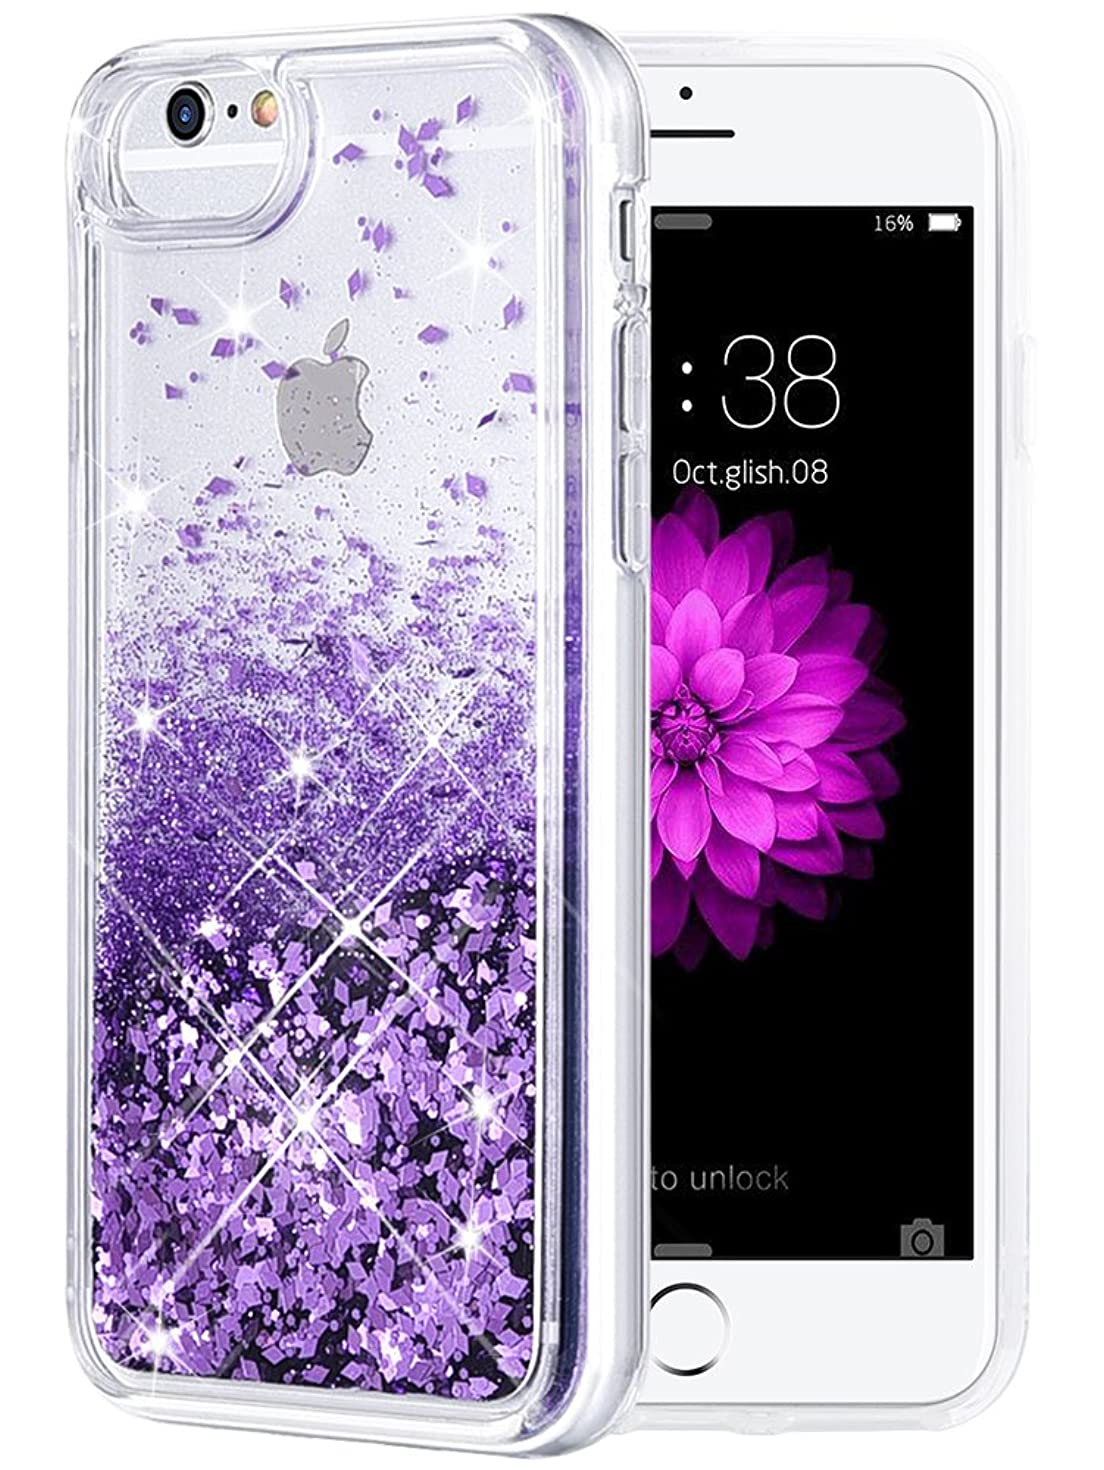 iPhone 6/6S/7/8 Case, Caka iPhone 6S Glitter Case [with Tempered Glass Screen Protector] Bling Flowing Floating Luxury Glitter Sparkle Soft TPU Liquid Case for iPhone 6/6S/7/8 (4.7